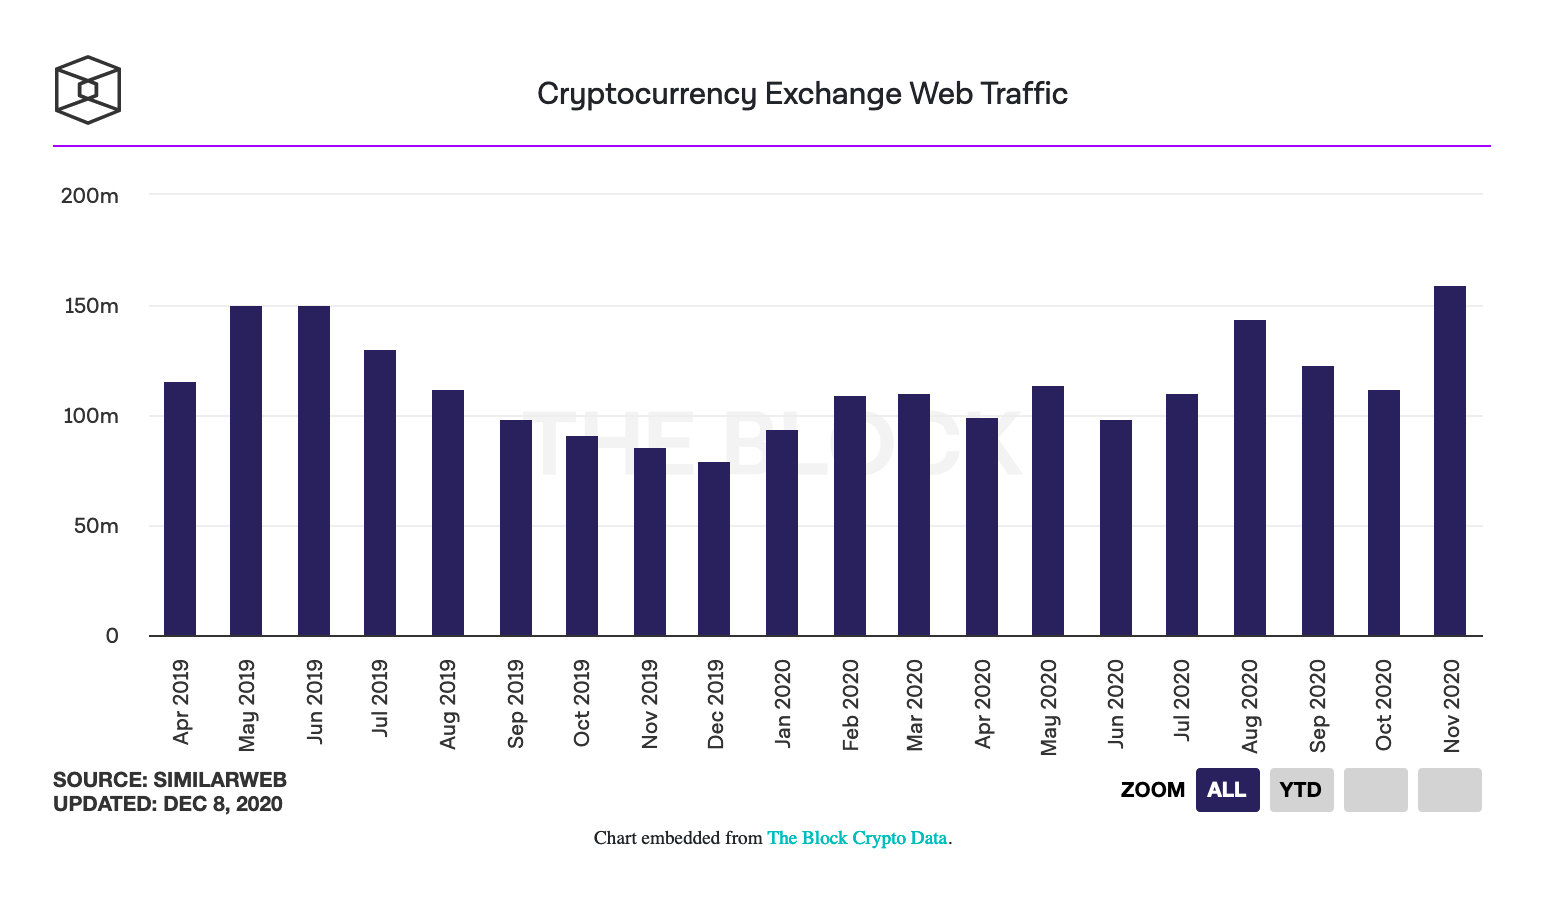 Coinbase's Web traffic surges 64% month-over-month as exchanges see 158.8 million visits in November